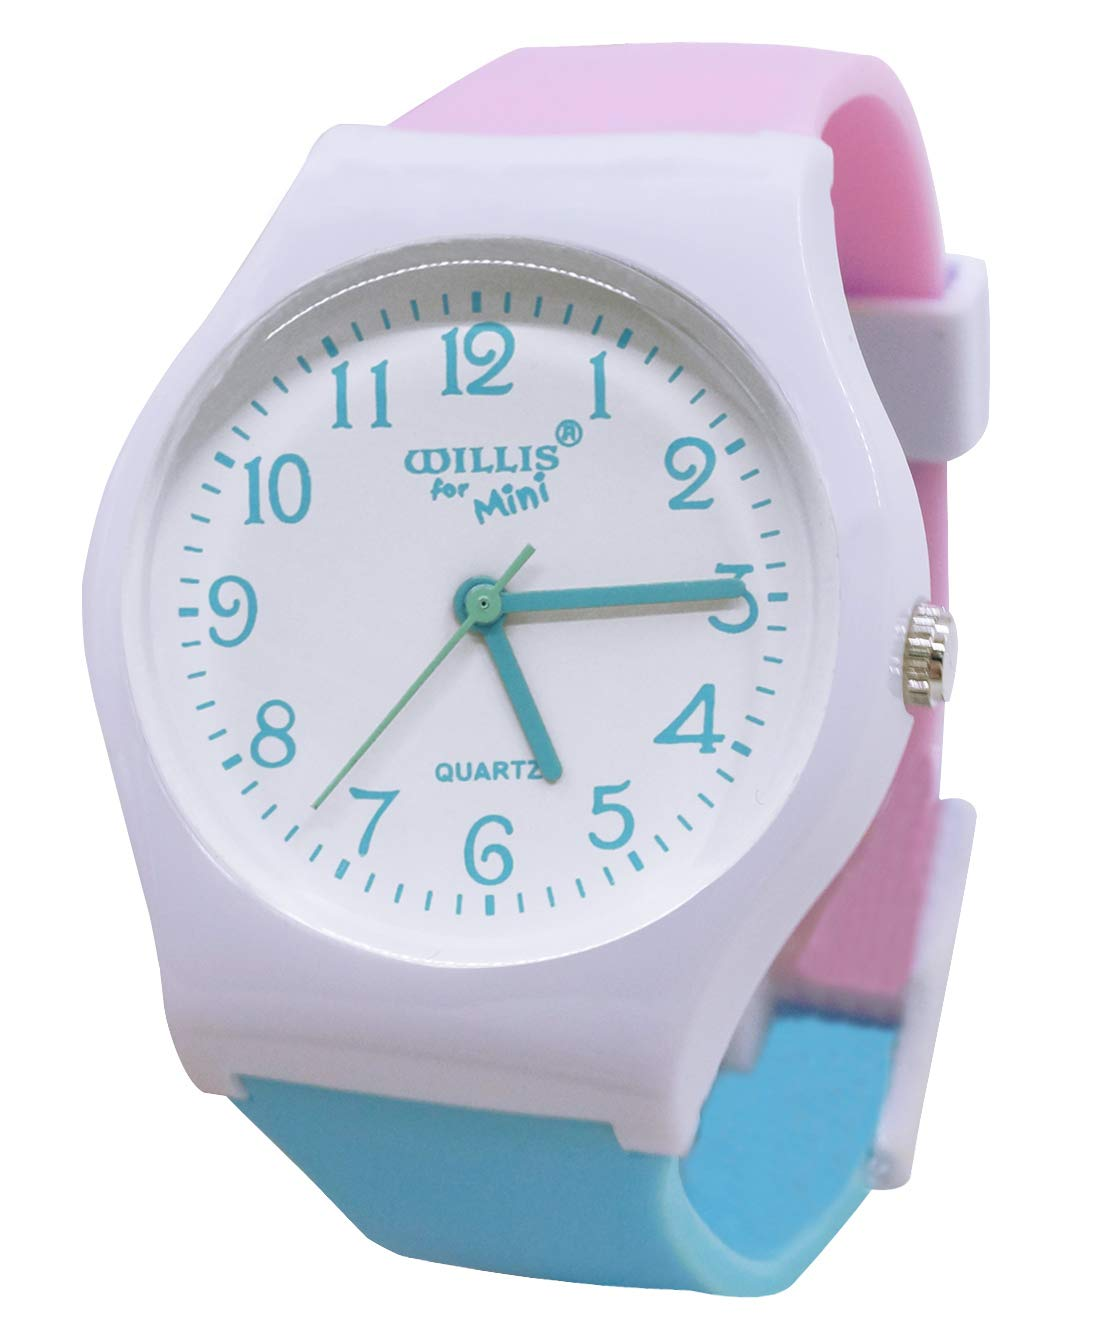 Lovely Colour Jelly Quartz Watches for Child Kids Girl Boys Student Casual Sport Watch Waterproof Wrist Watch with Environmental Friendly PVC Watchband Pink & Blue